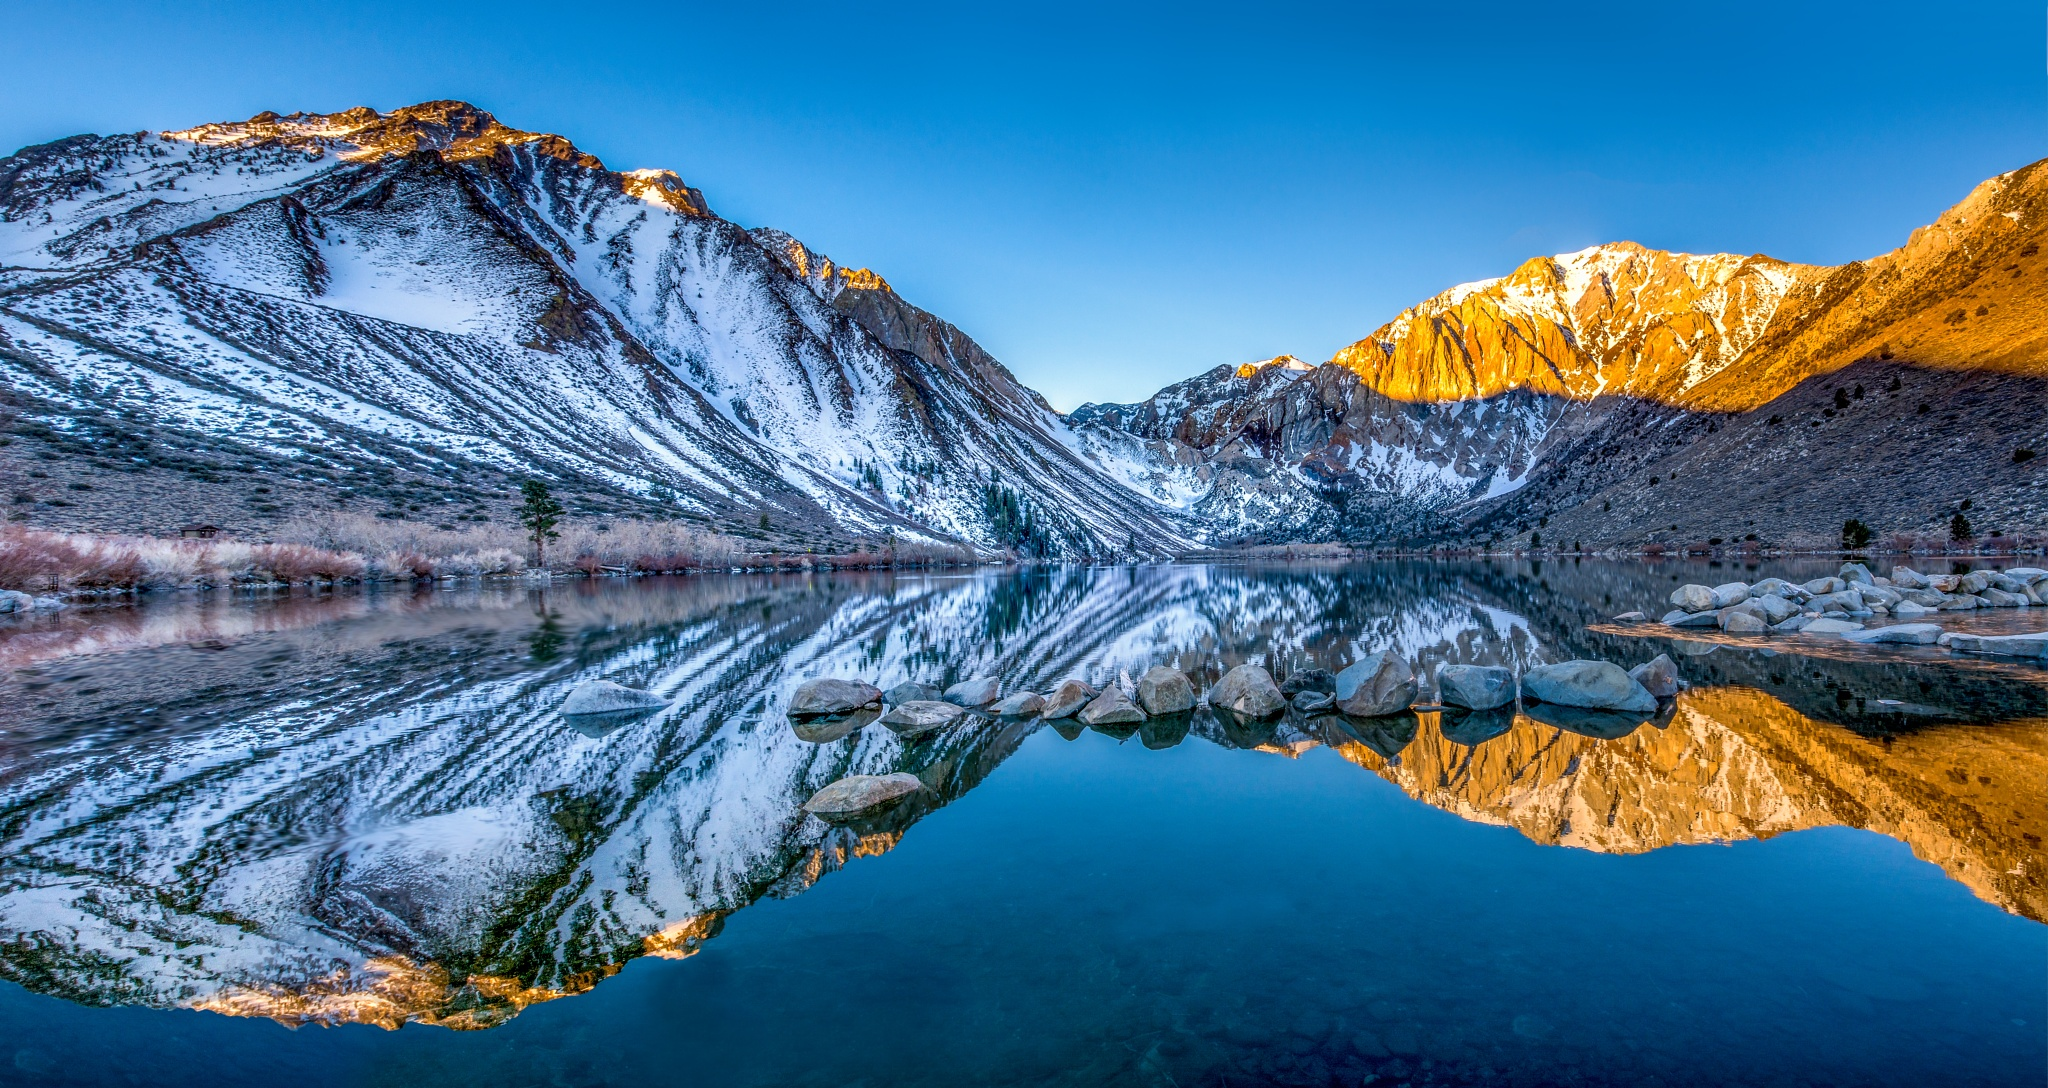 Peaceful Morning On Convict Lake by Robert Schmalle